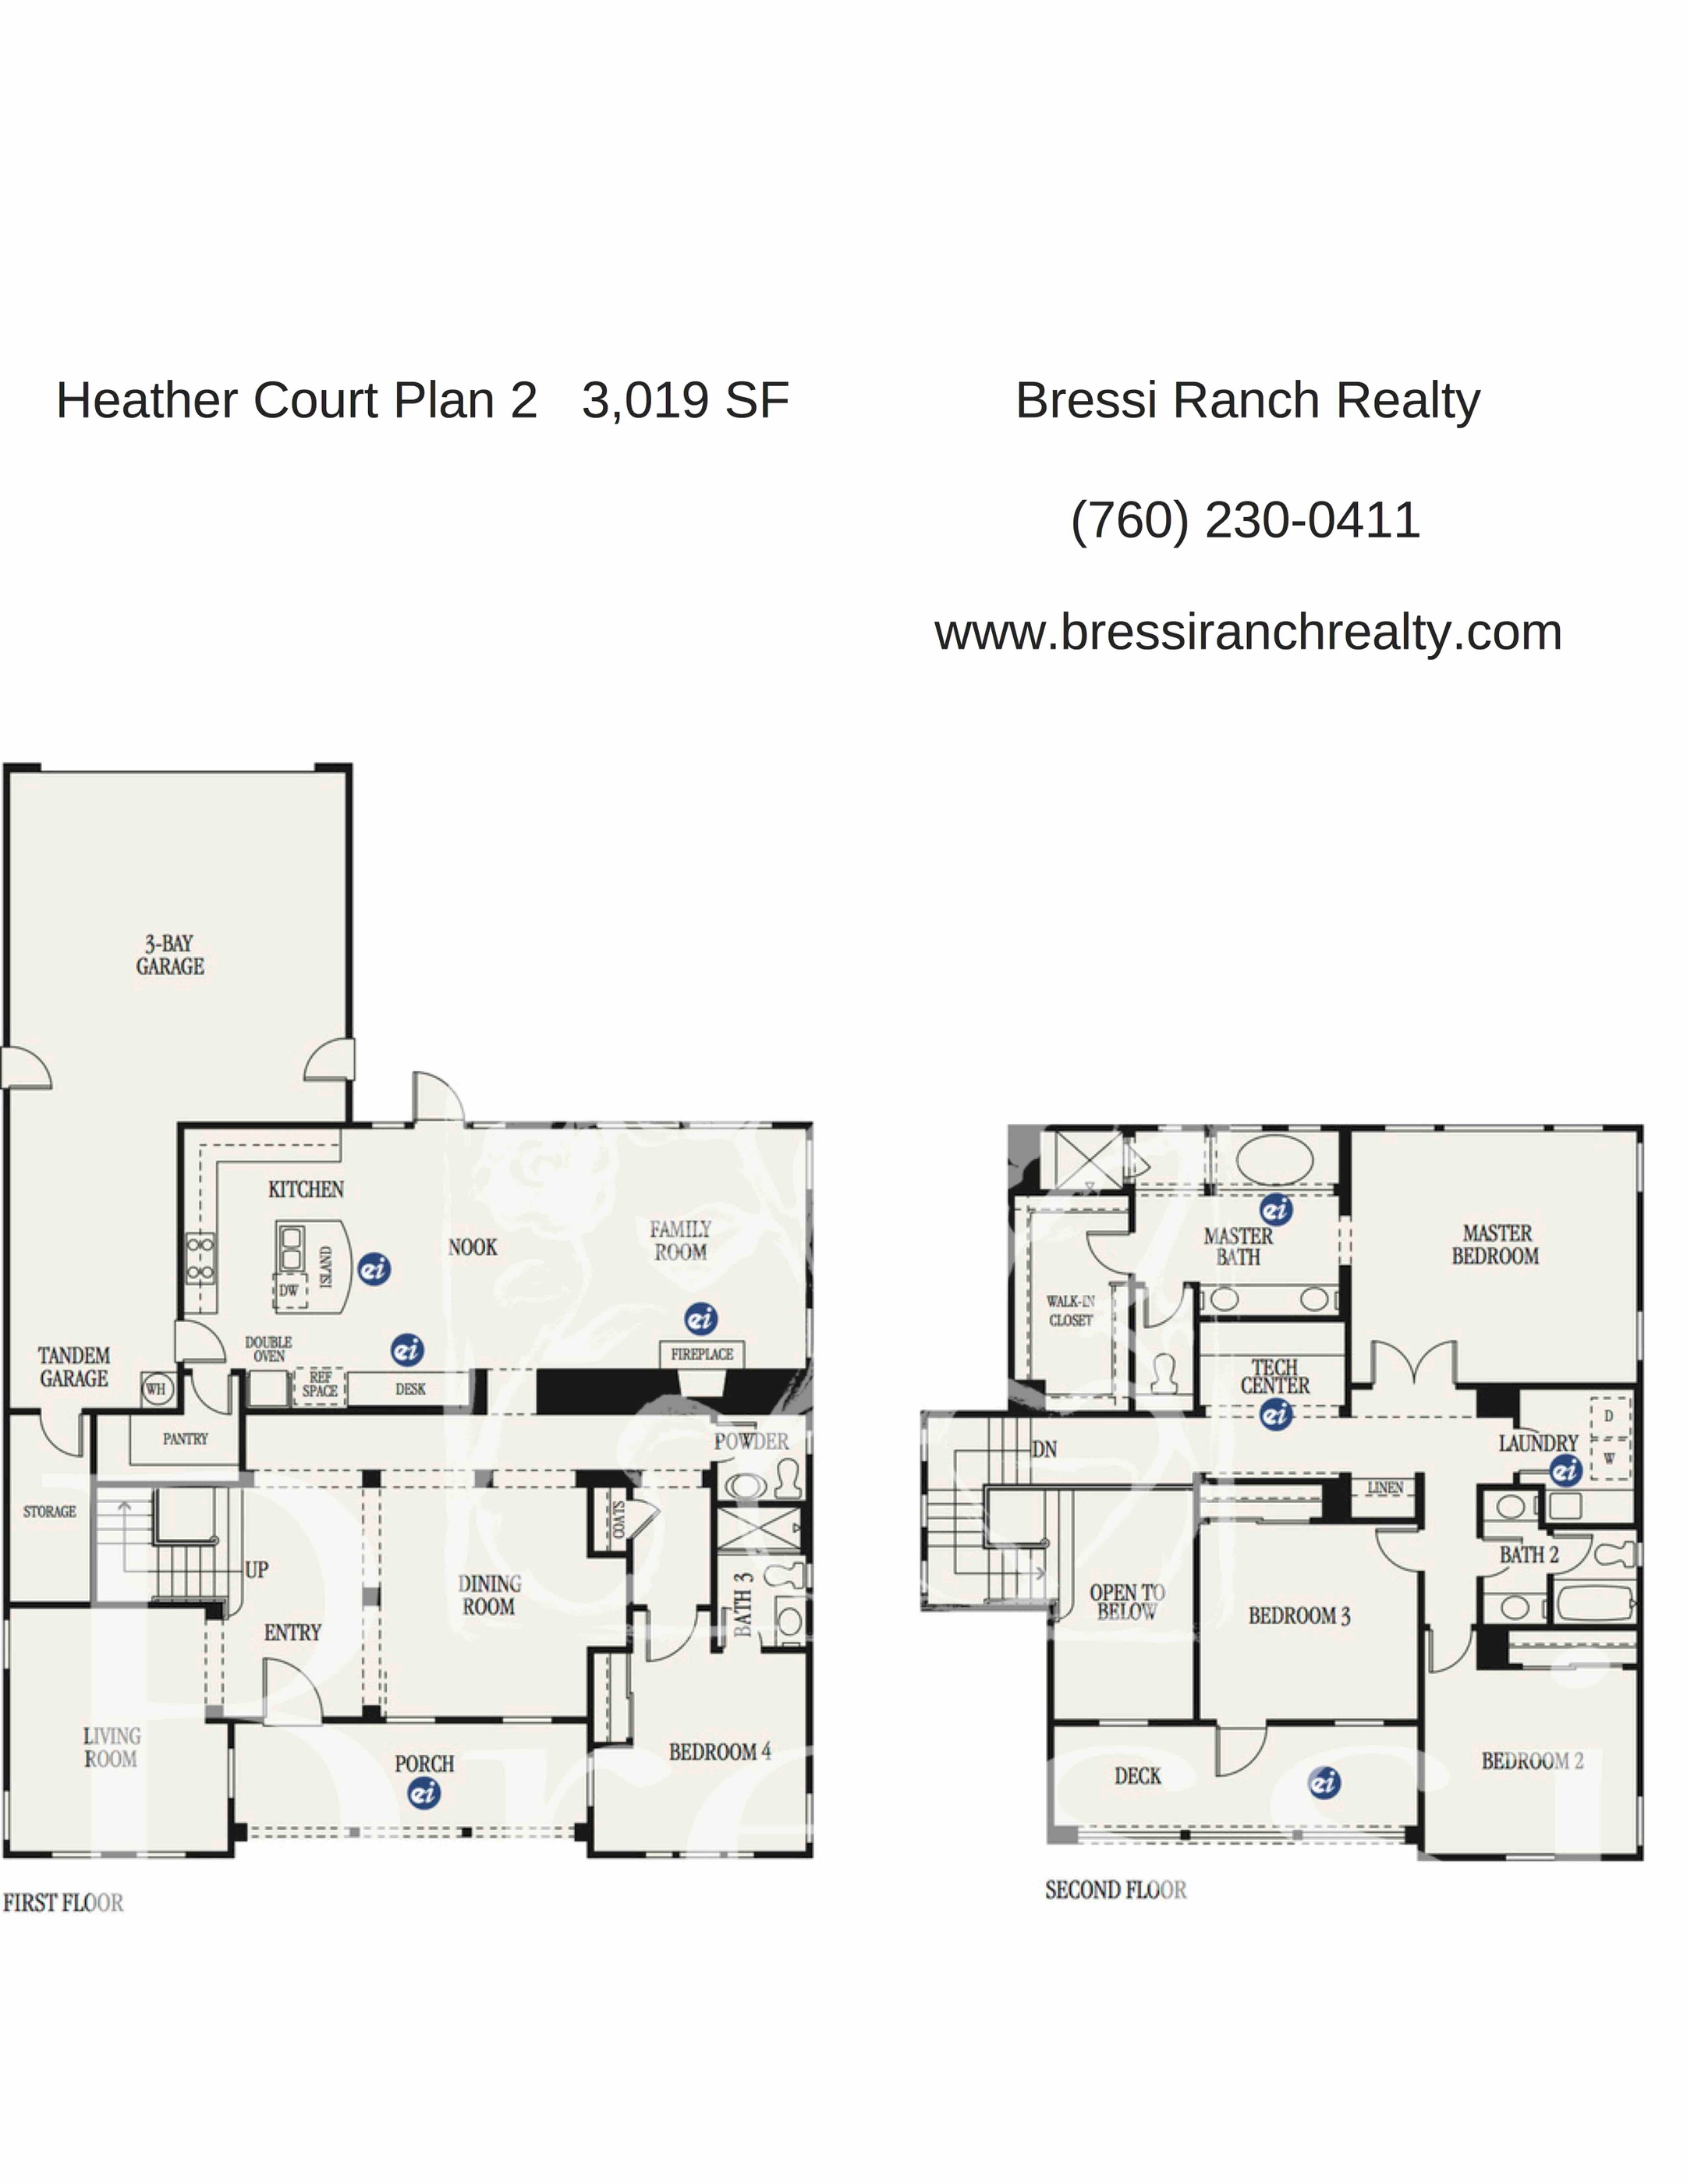 Heather Court Plan 2 Bressi Ranch